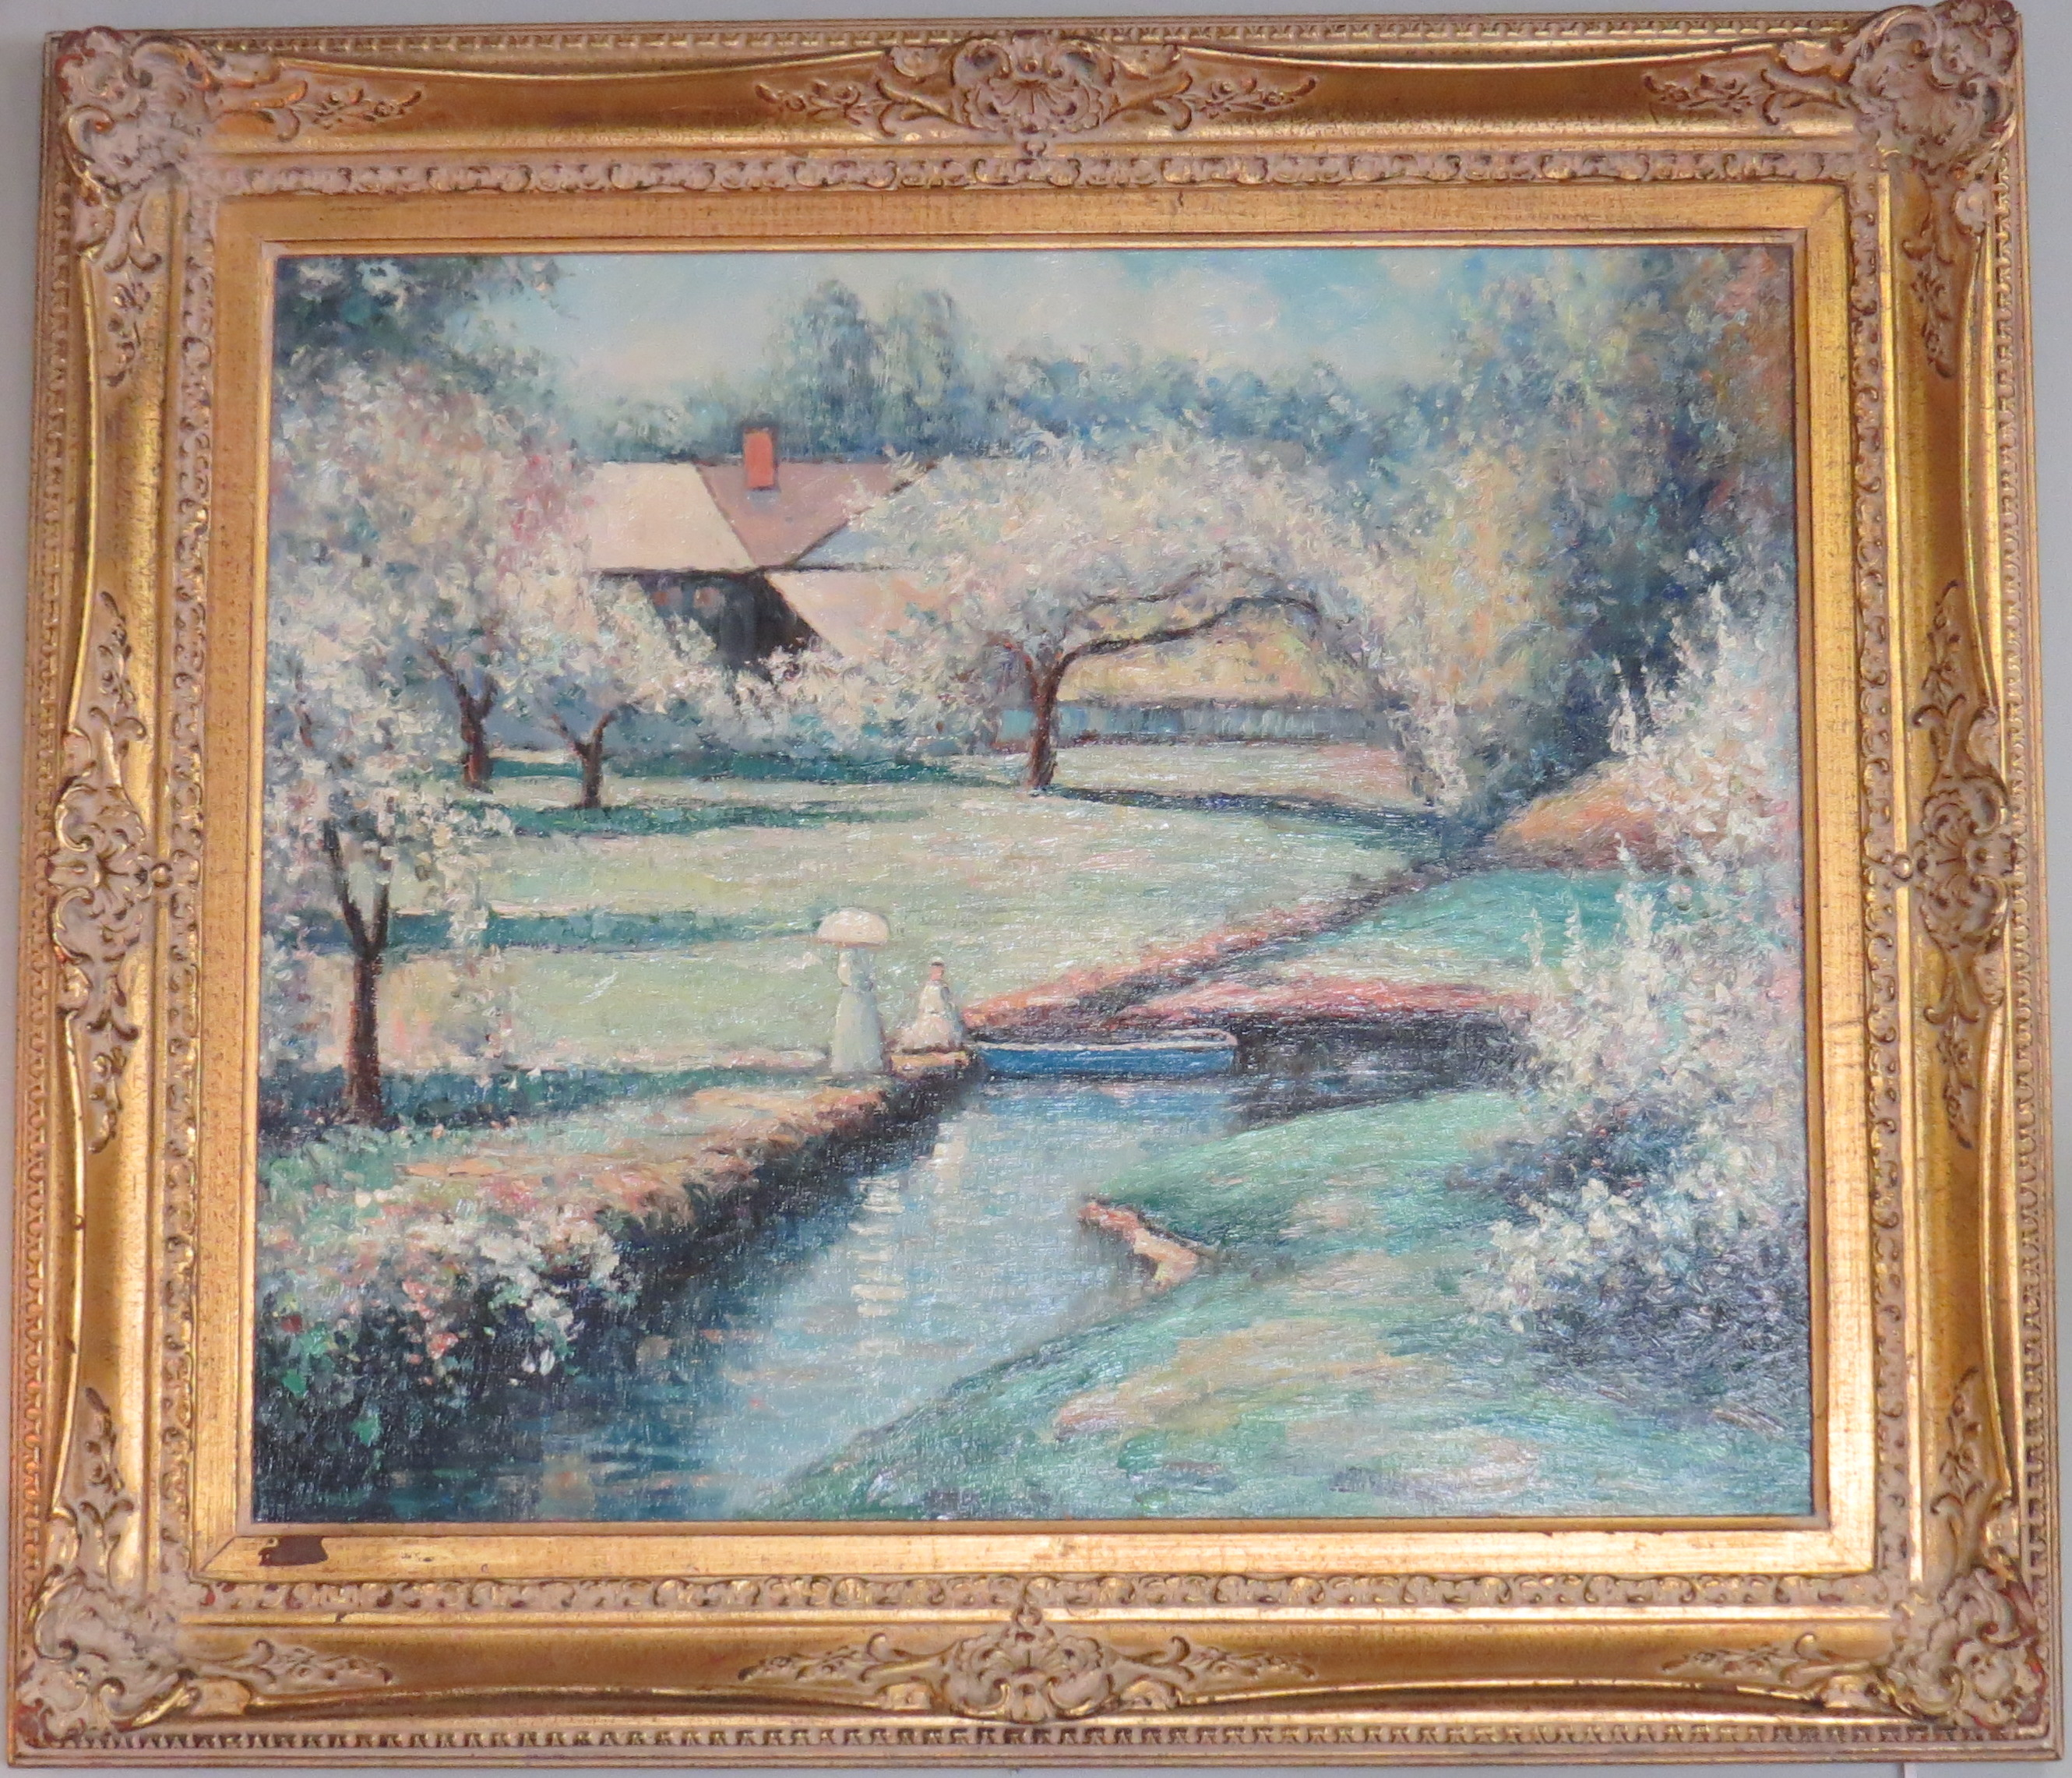 Pair of Oil on Canvas Paintings in Gold Gilt Frames, signed James Daly